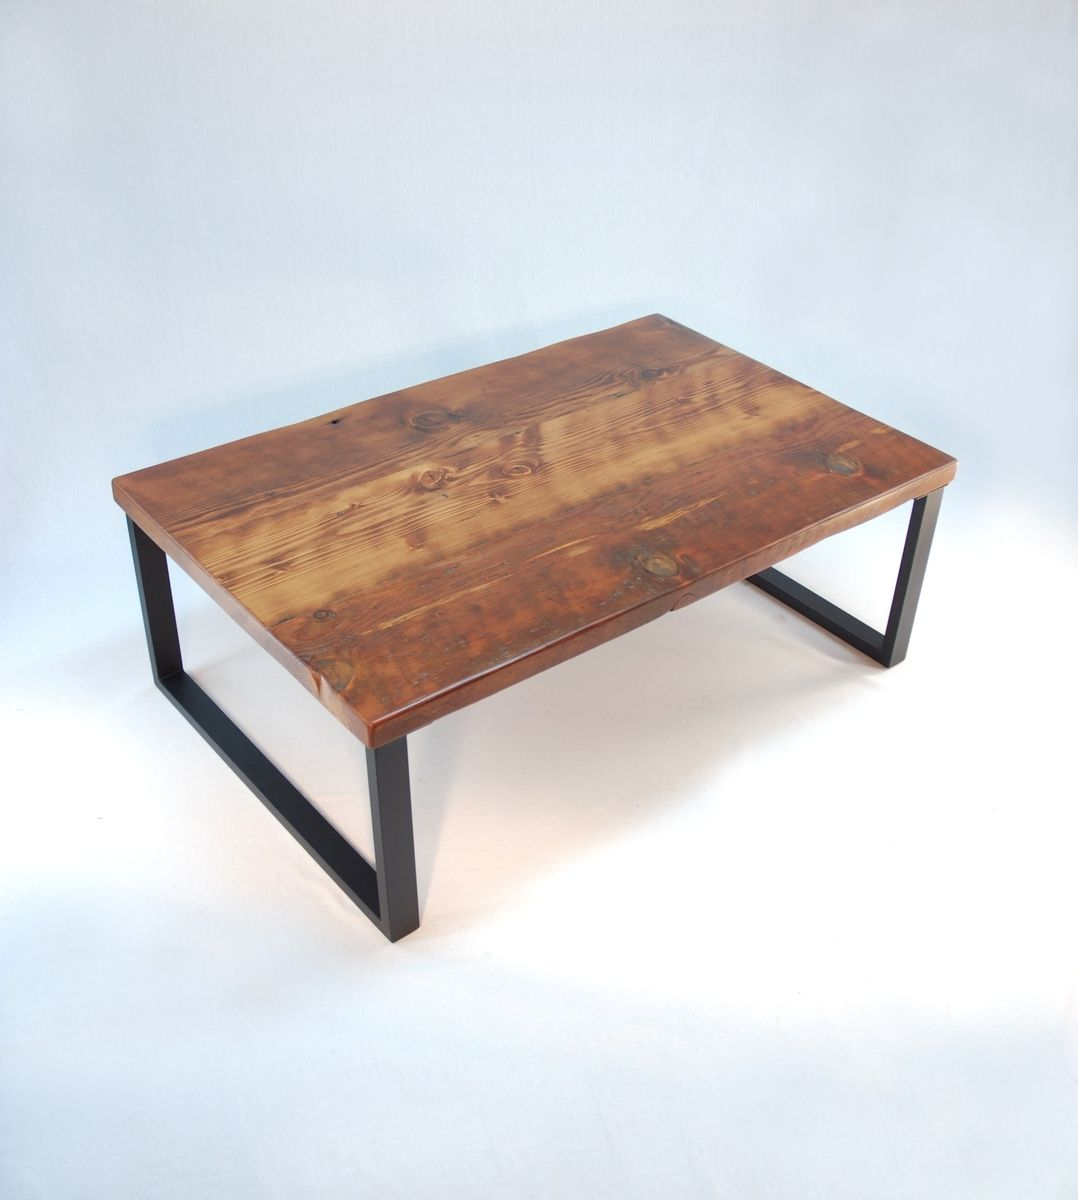 Handmade Redmond Rustic Modern Coffee Table By Jonathan January